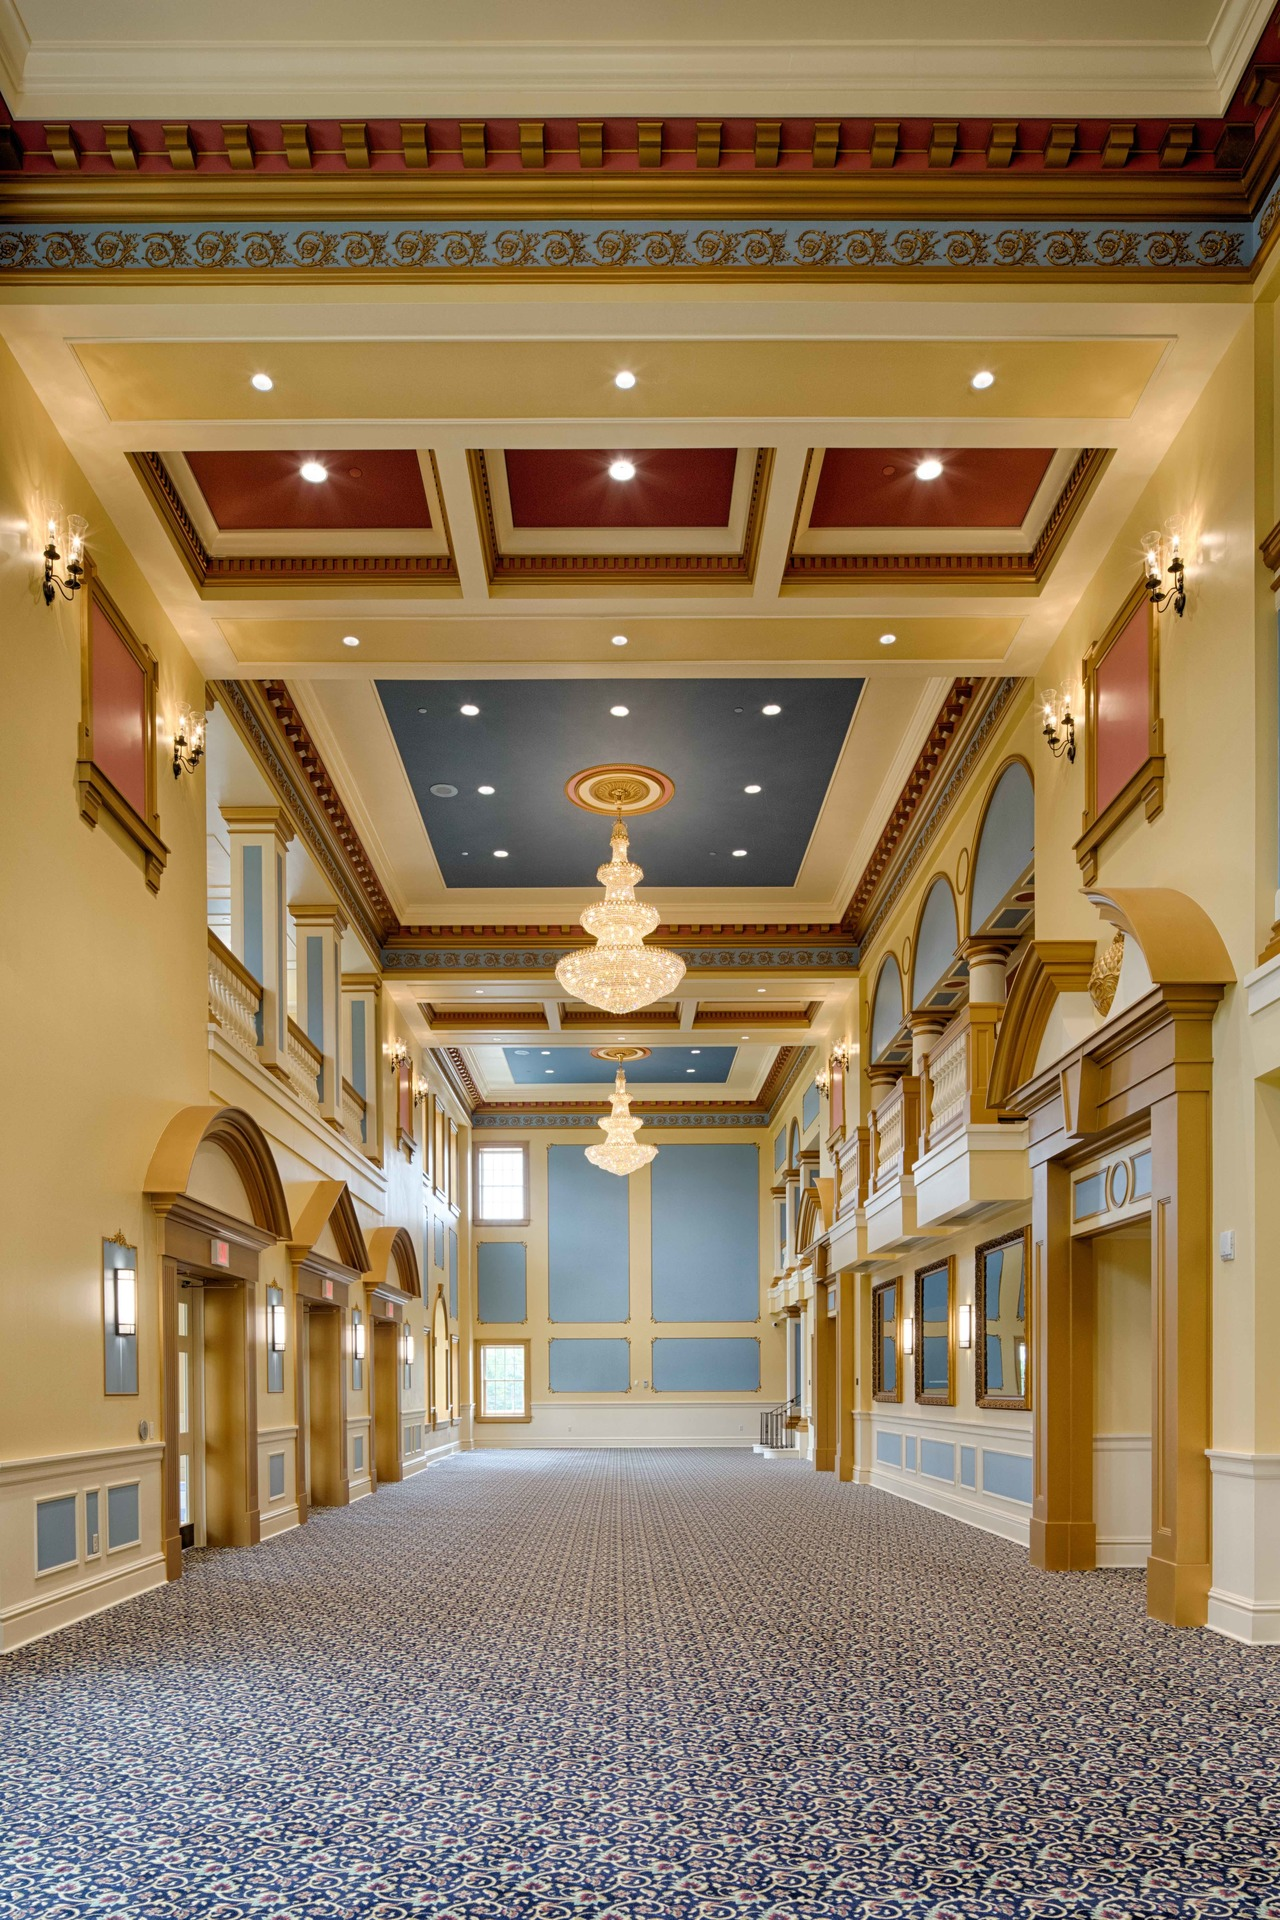 The gorgeous and classic design of the lobby at Providence Academy Performing Arts Center in Plymouth, Minnesota, by Stahl.